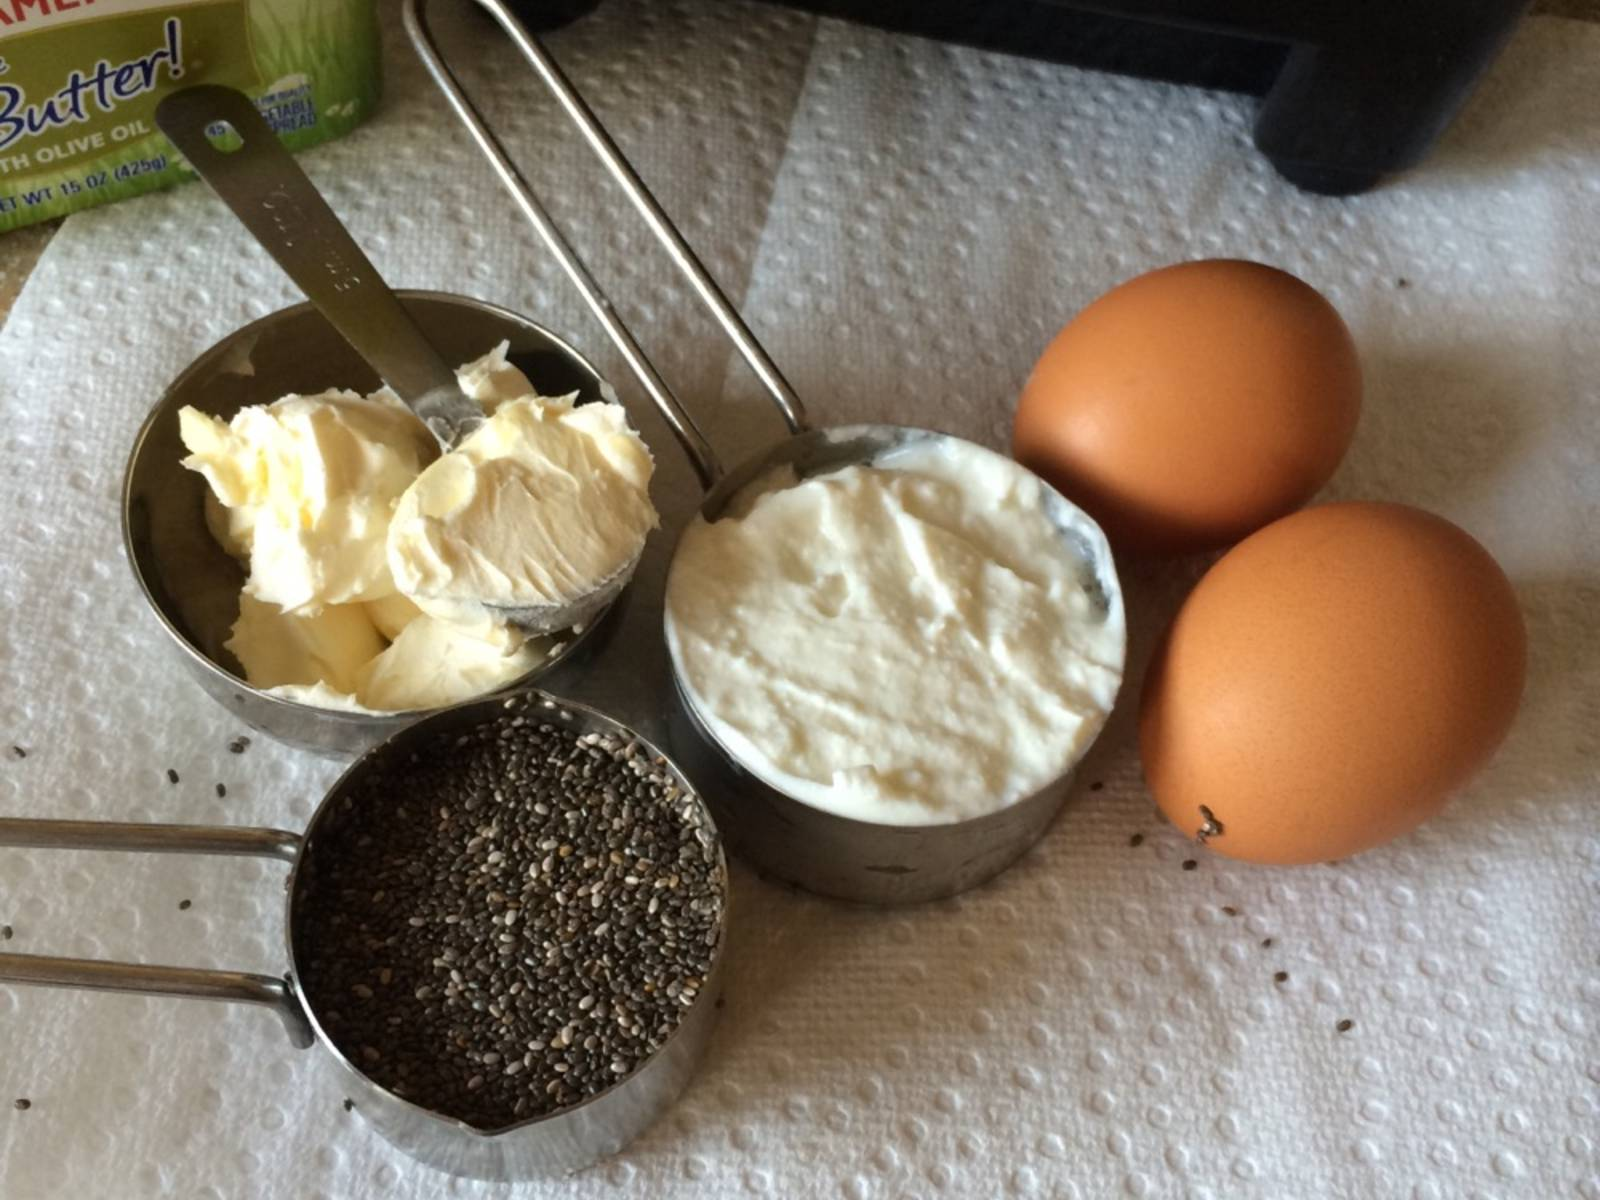 Blend chia seeds, Greek yogurt, egg, and margarine into batter.